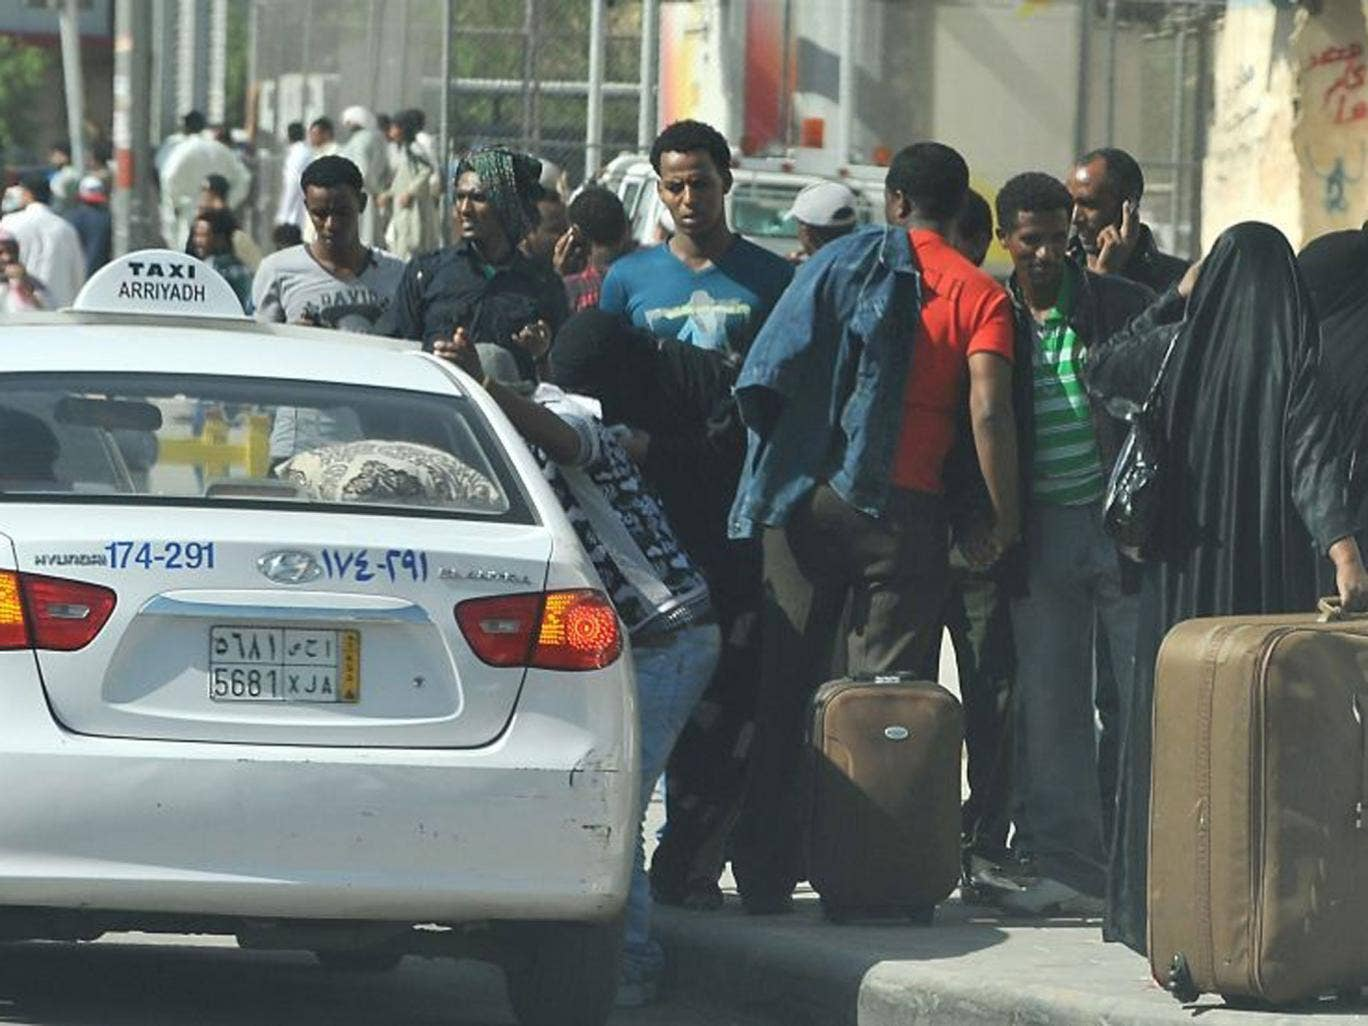 Foreign workers wait for a taxi to leave the Manfuhah neighbourhood of Riyadh on 10 November, after two people have been killed in clashes between Saudi and other foreign residents the previous day